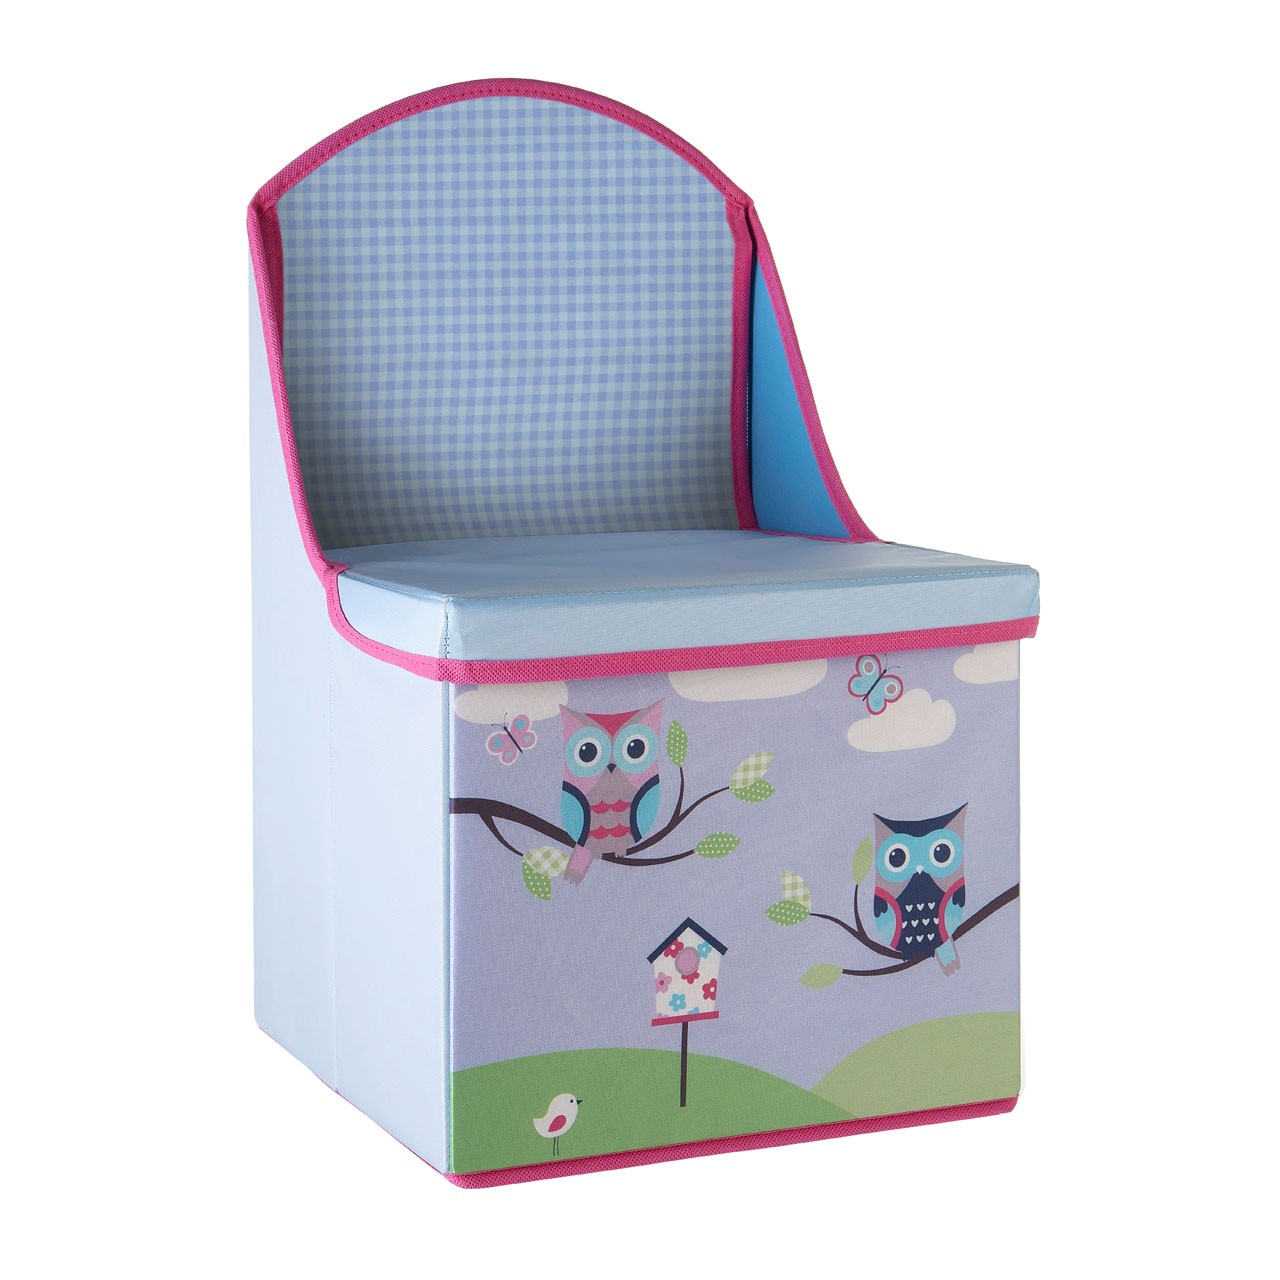 Prime Furnishing Children's Owl Design Storage Box/Seat - Purple